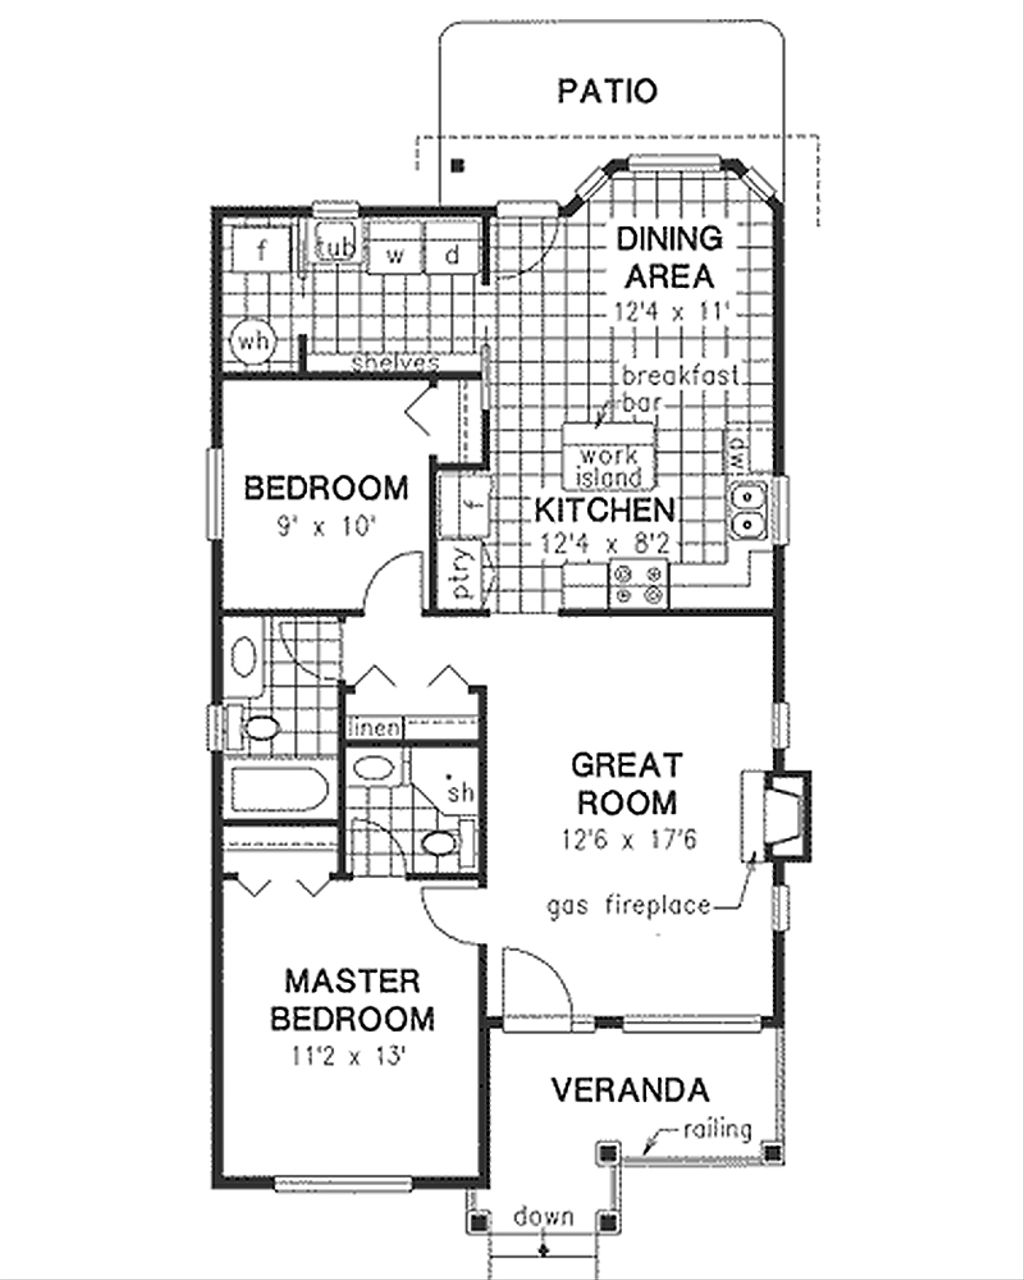 traditional style house plan 2 beds 2 baths 1000 sq ft plan 18 1040 rh houseplans com house floor plans 1000 sq ft house floor plans 1000 sq ft